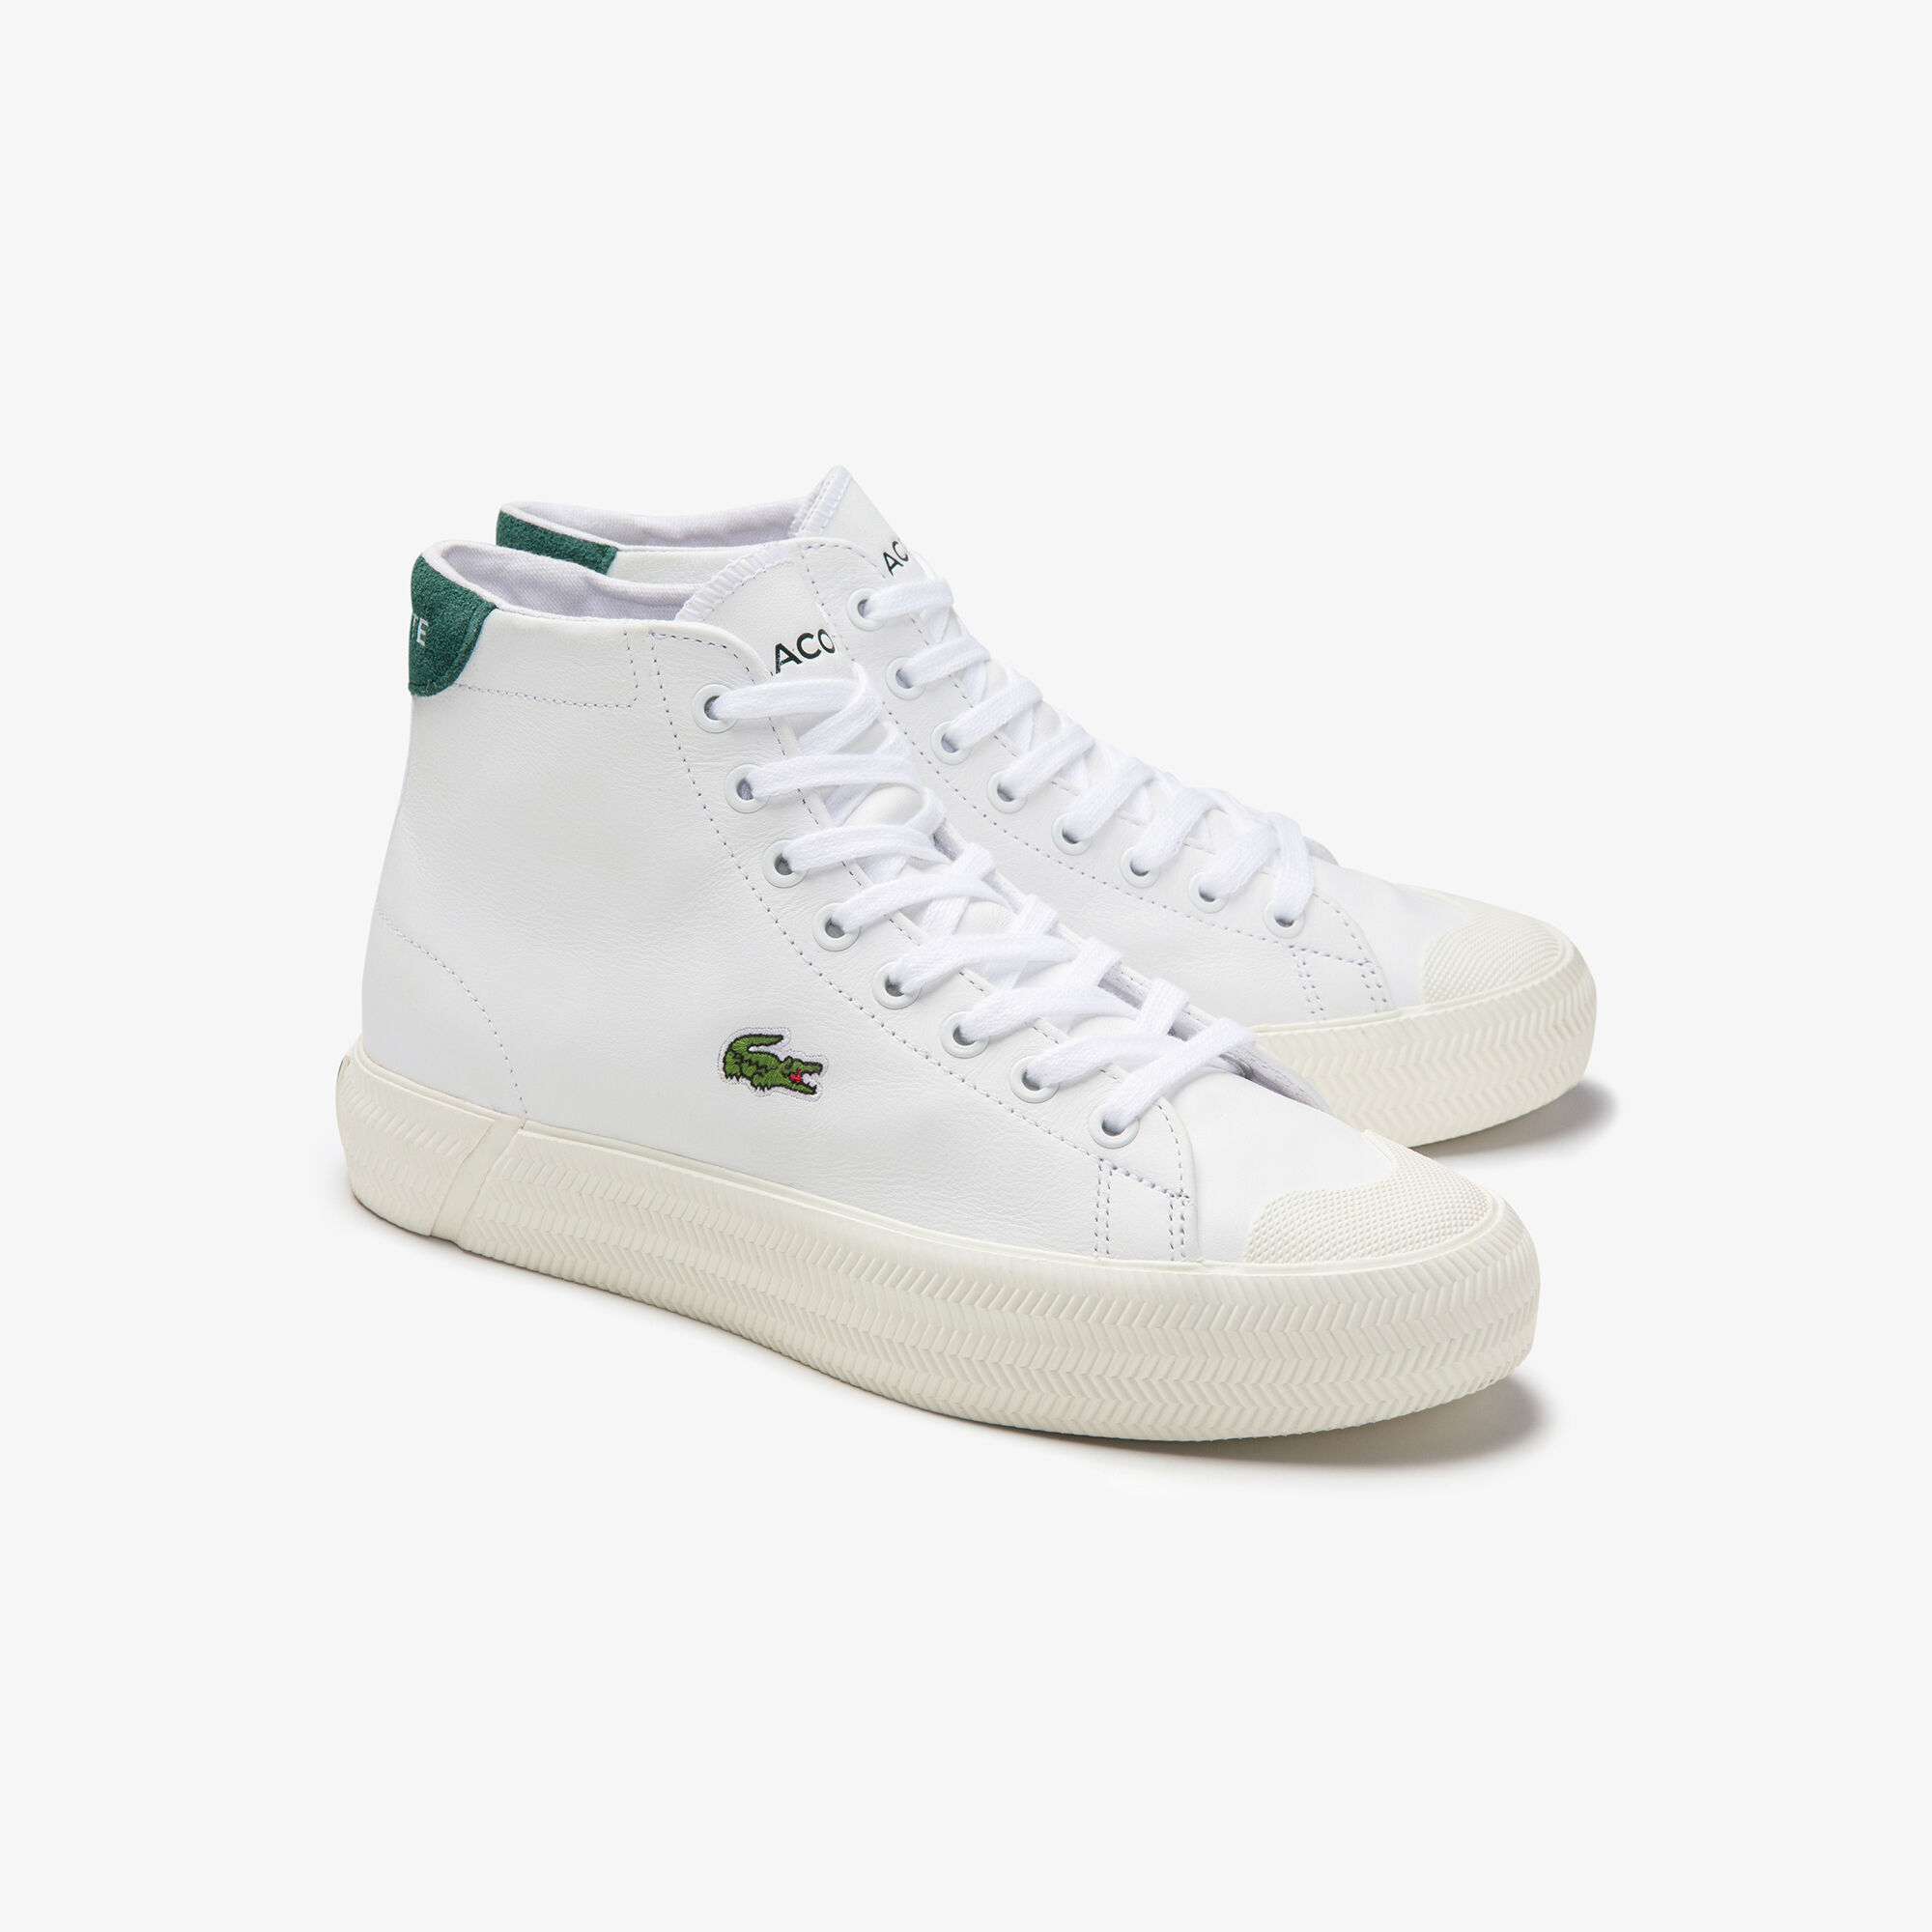 Men's Gripshot Bicolour Leather and Suede Sneakers